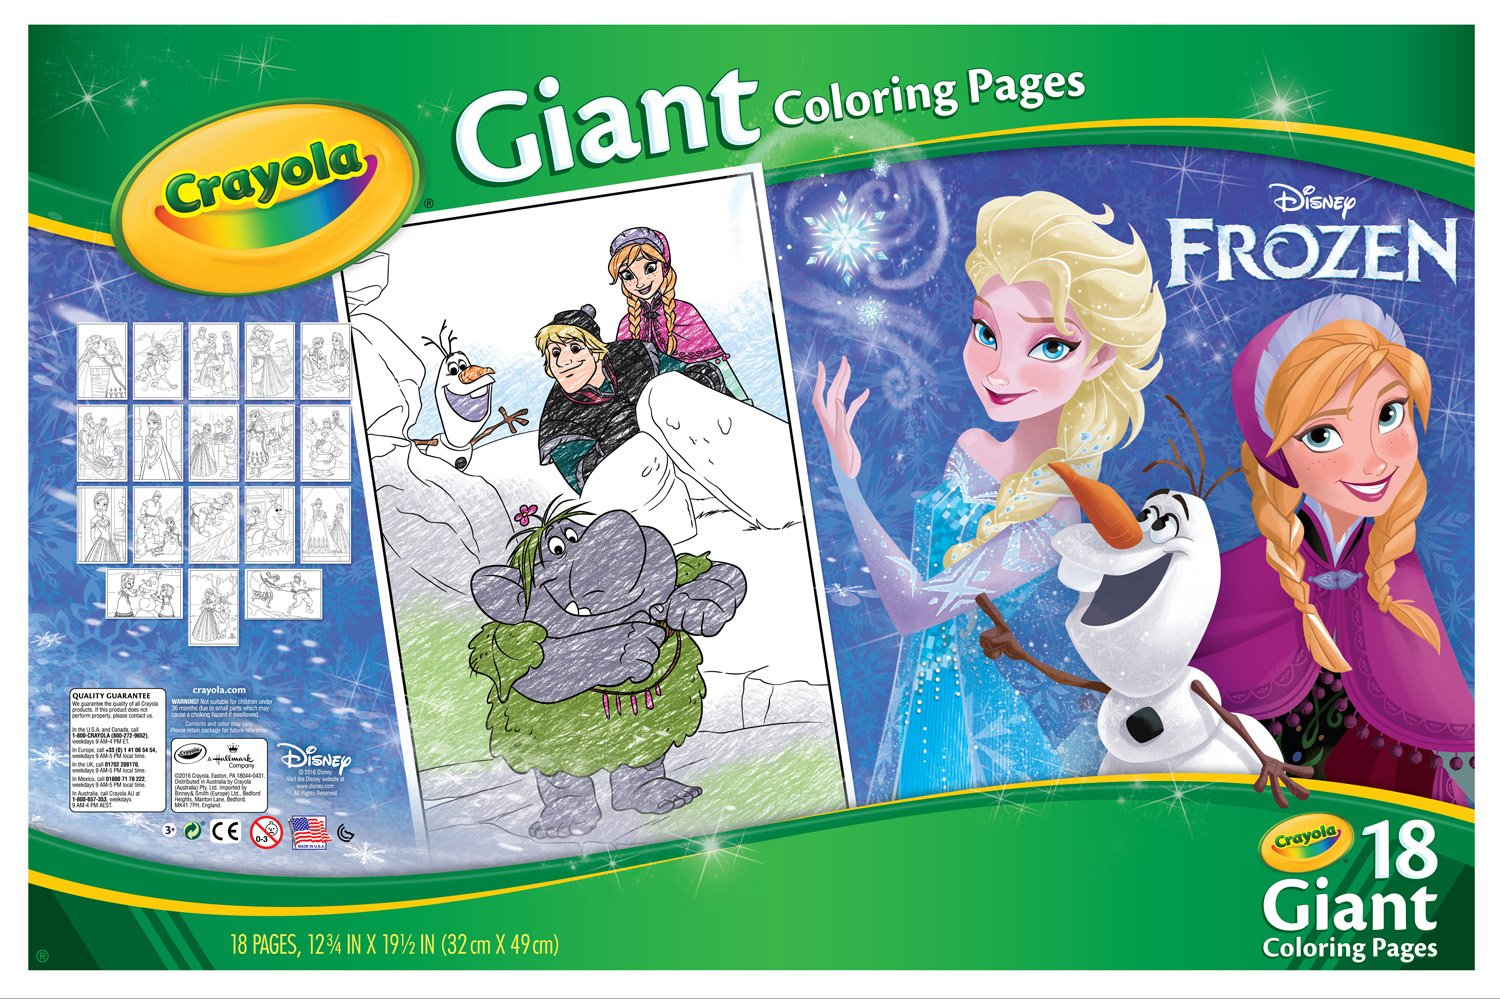 Moana coloring pages crayola - Moana Coloring Pages Crayola 4